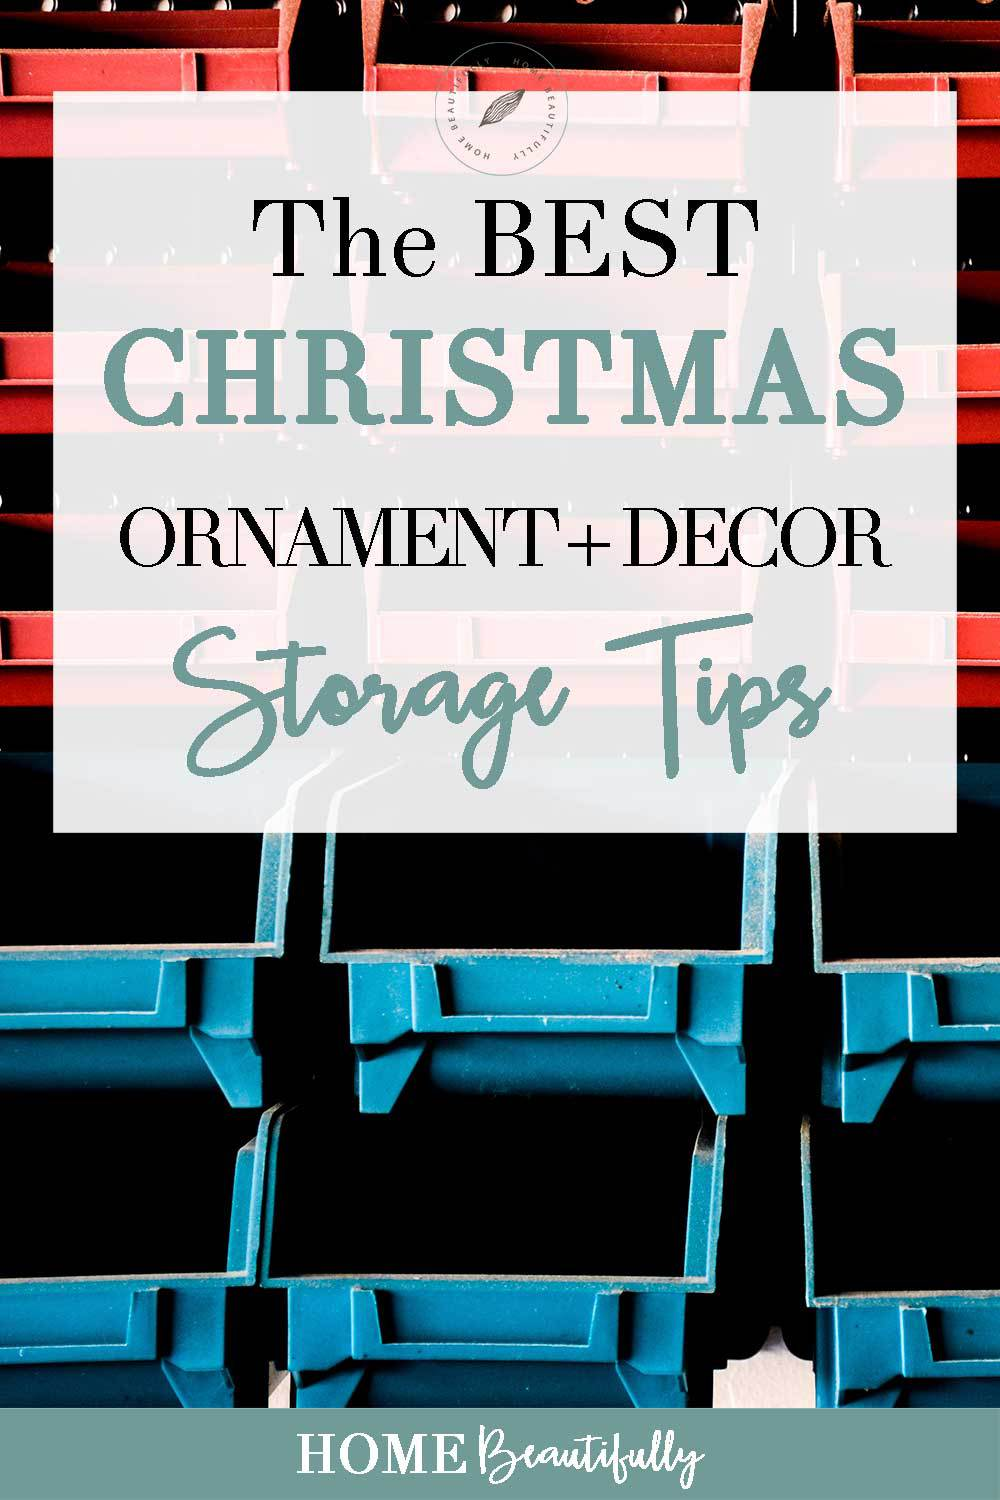 Holiday Decoration Storage Ideas Part - 44: Christmas Decor Storage Ideas ...